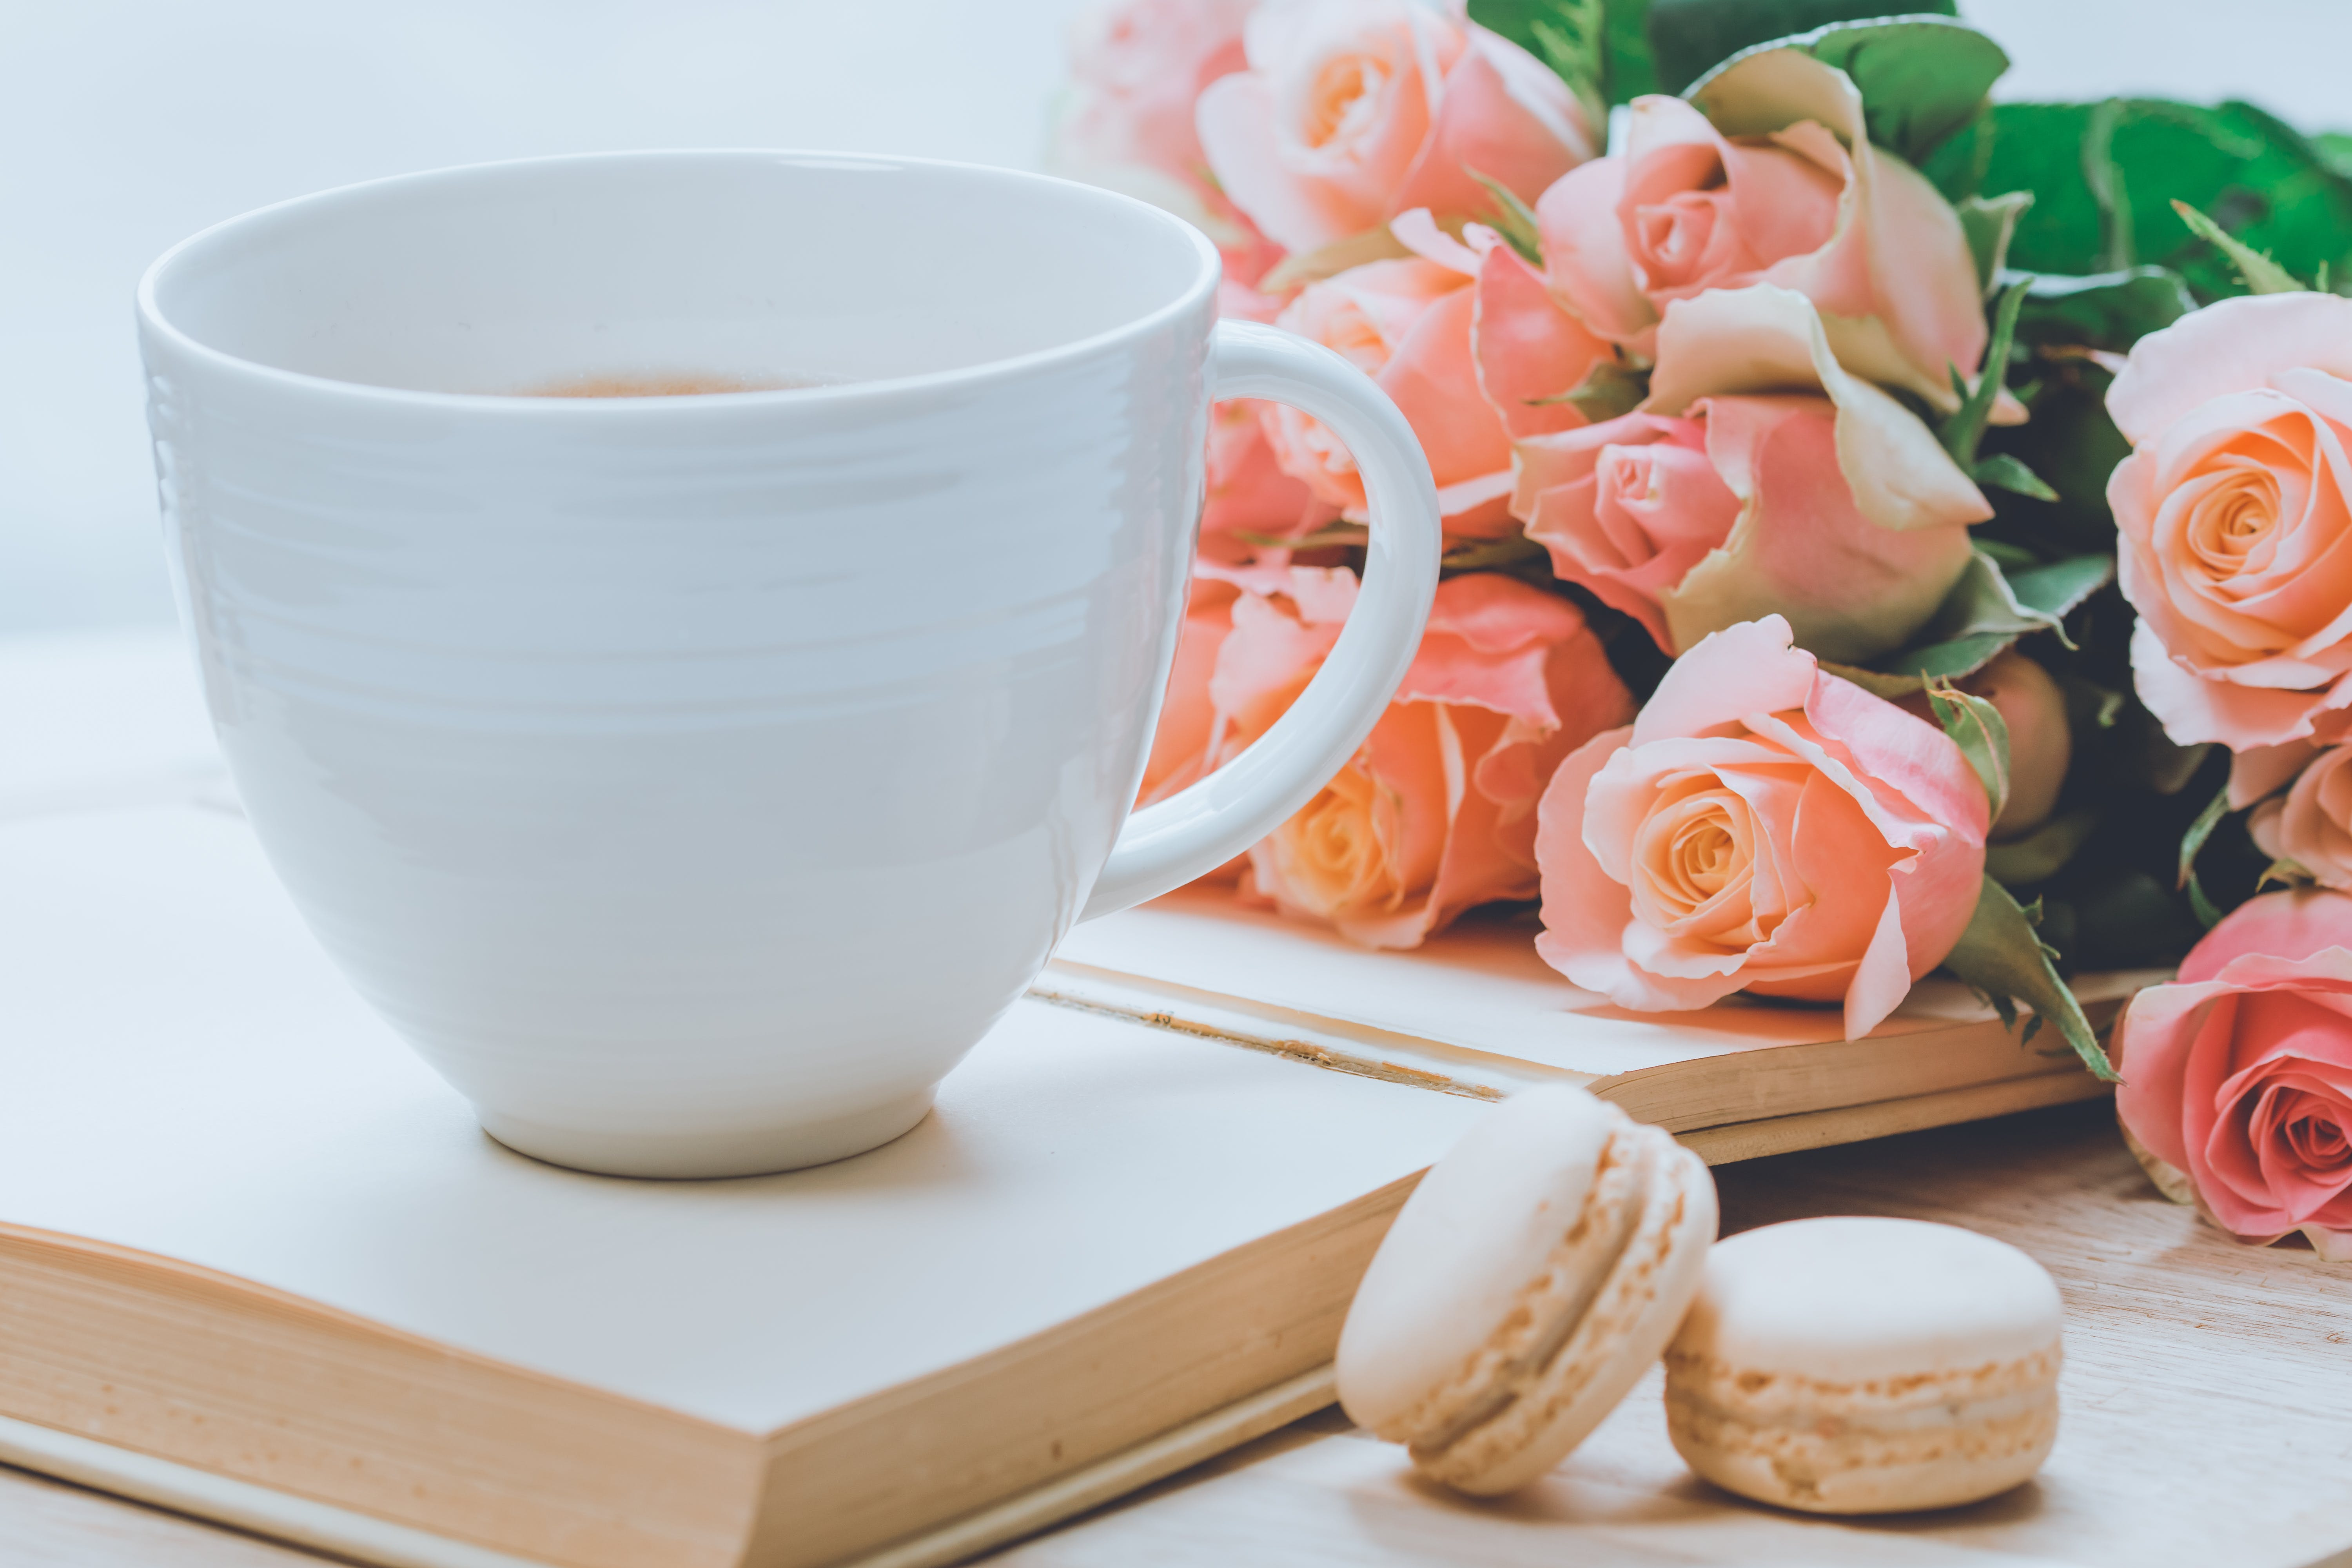 Close-Up Photo of Coffee Mug Near Pink Roses and Macarons